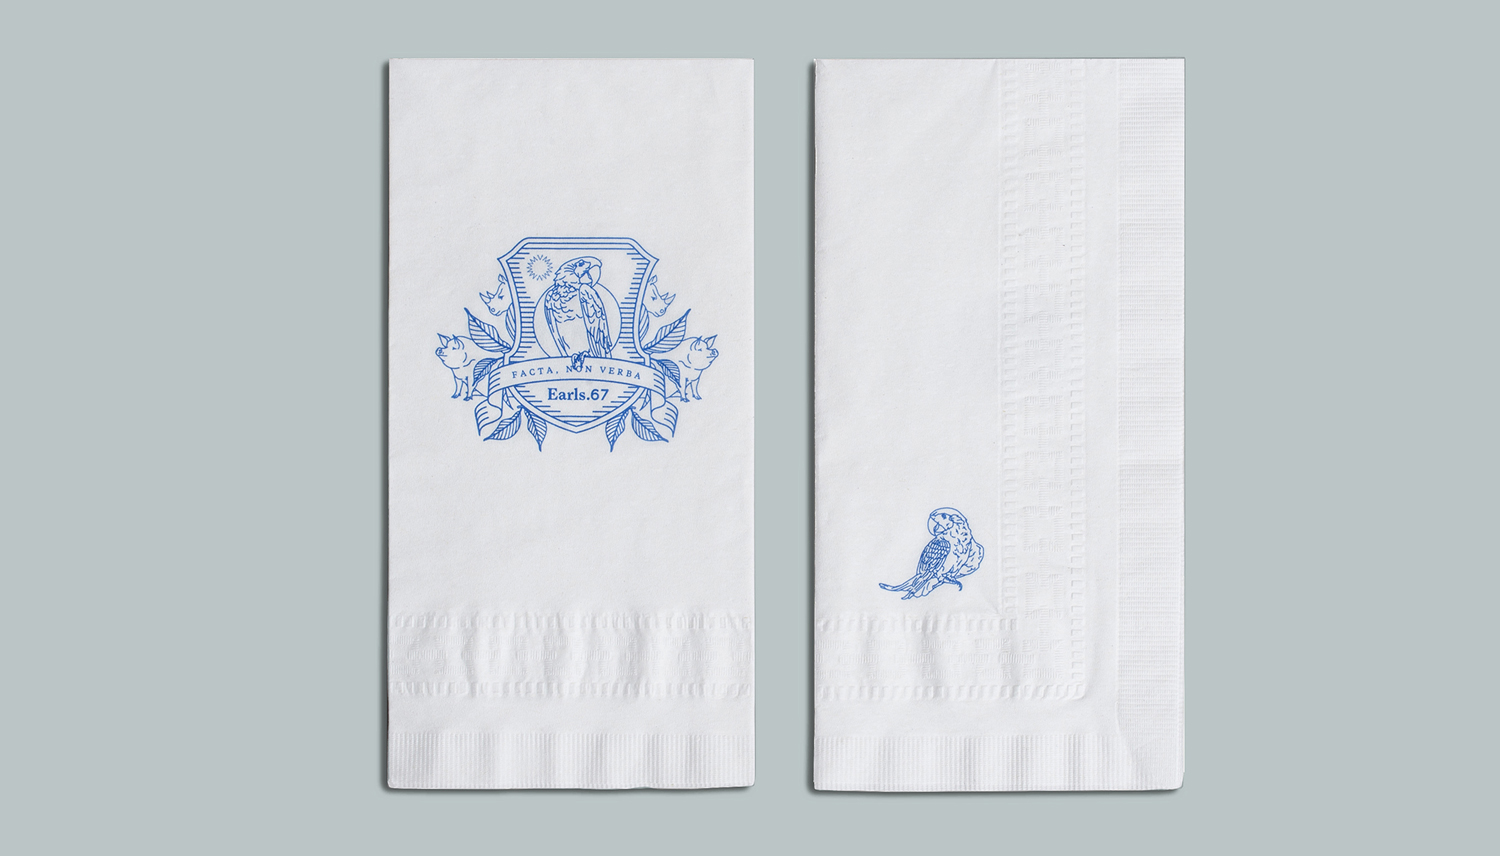 Branded napkins designed by Glasfurd & Walker for US and Canadian restaurant chain prototype Earls.67